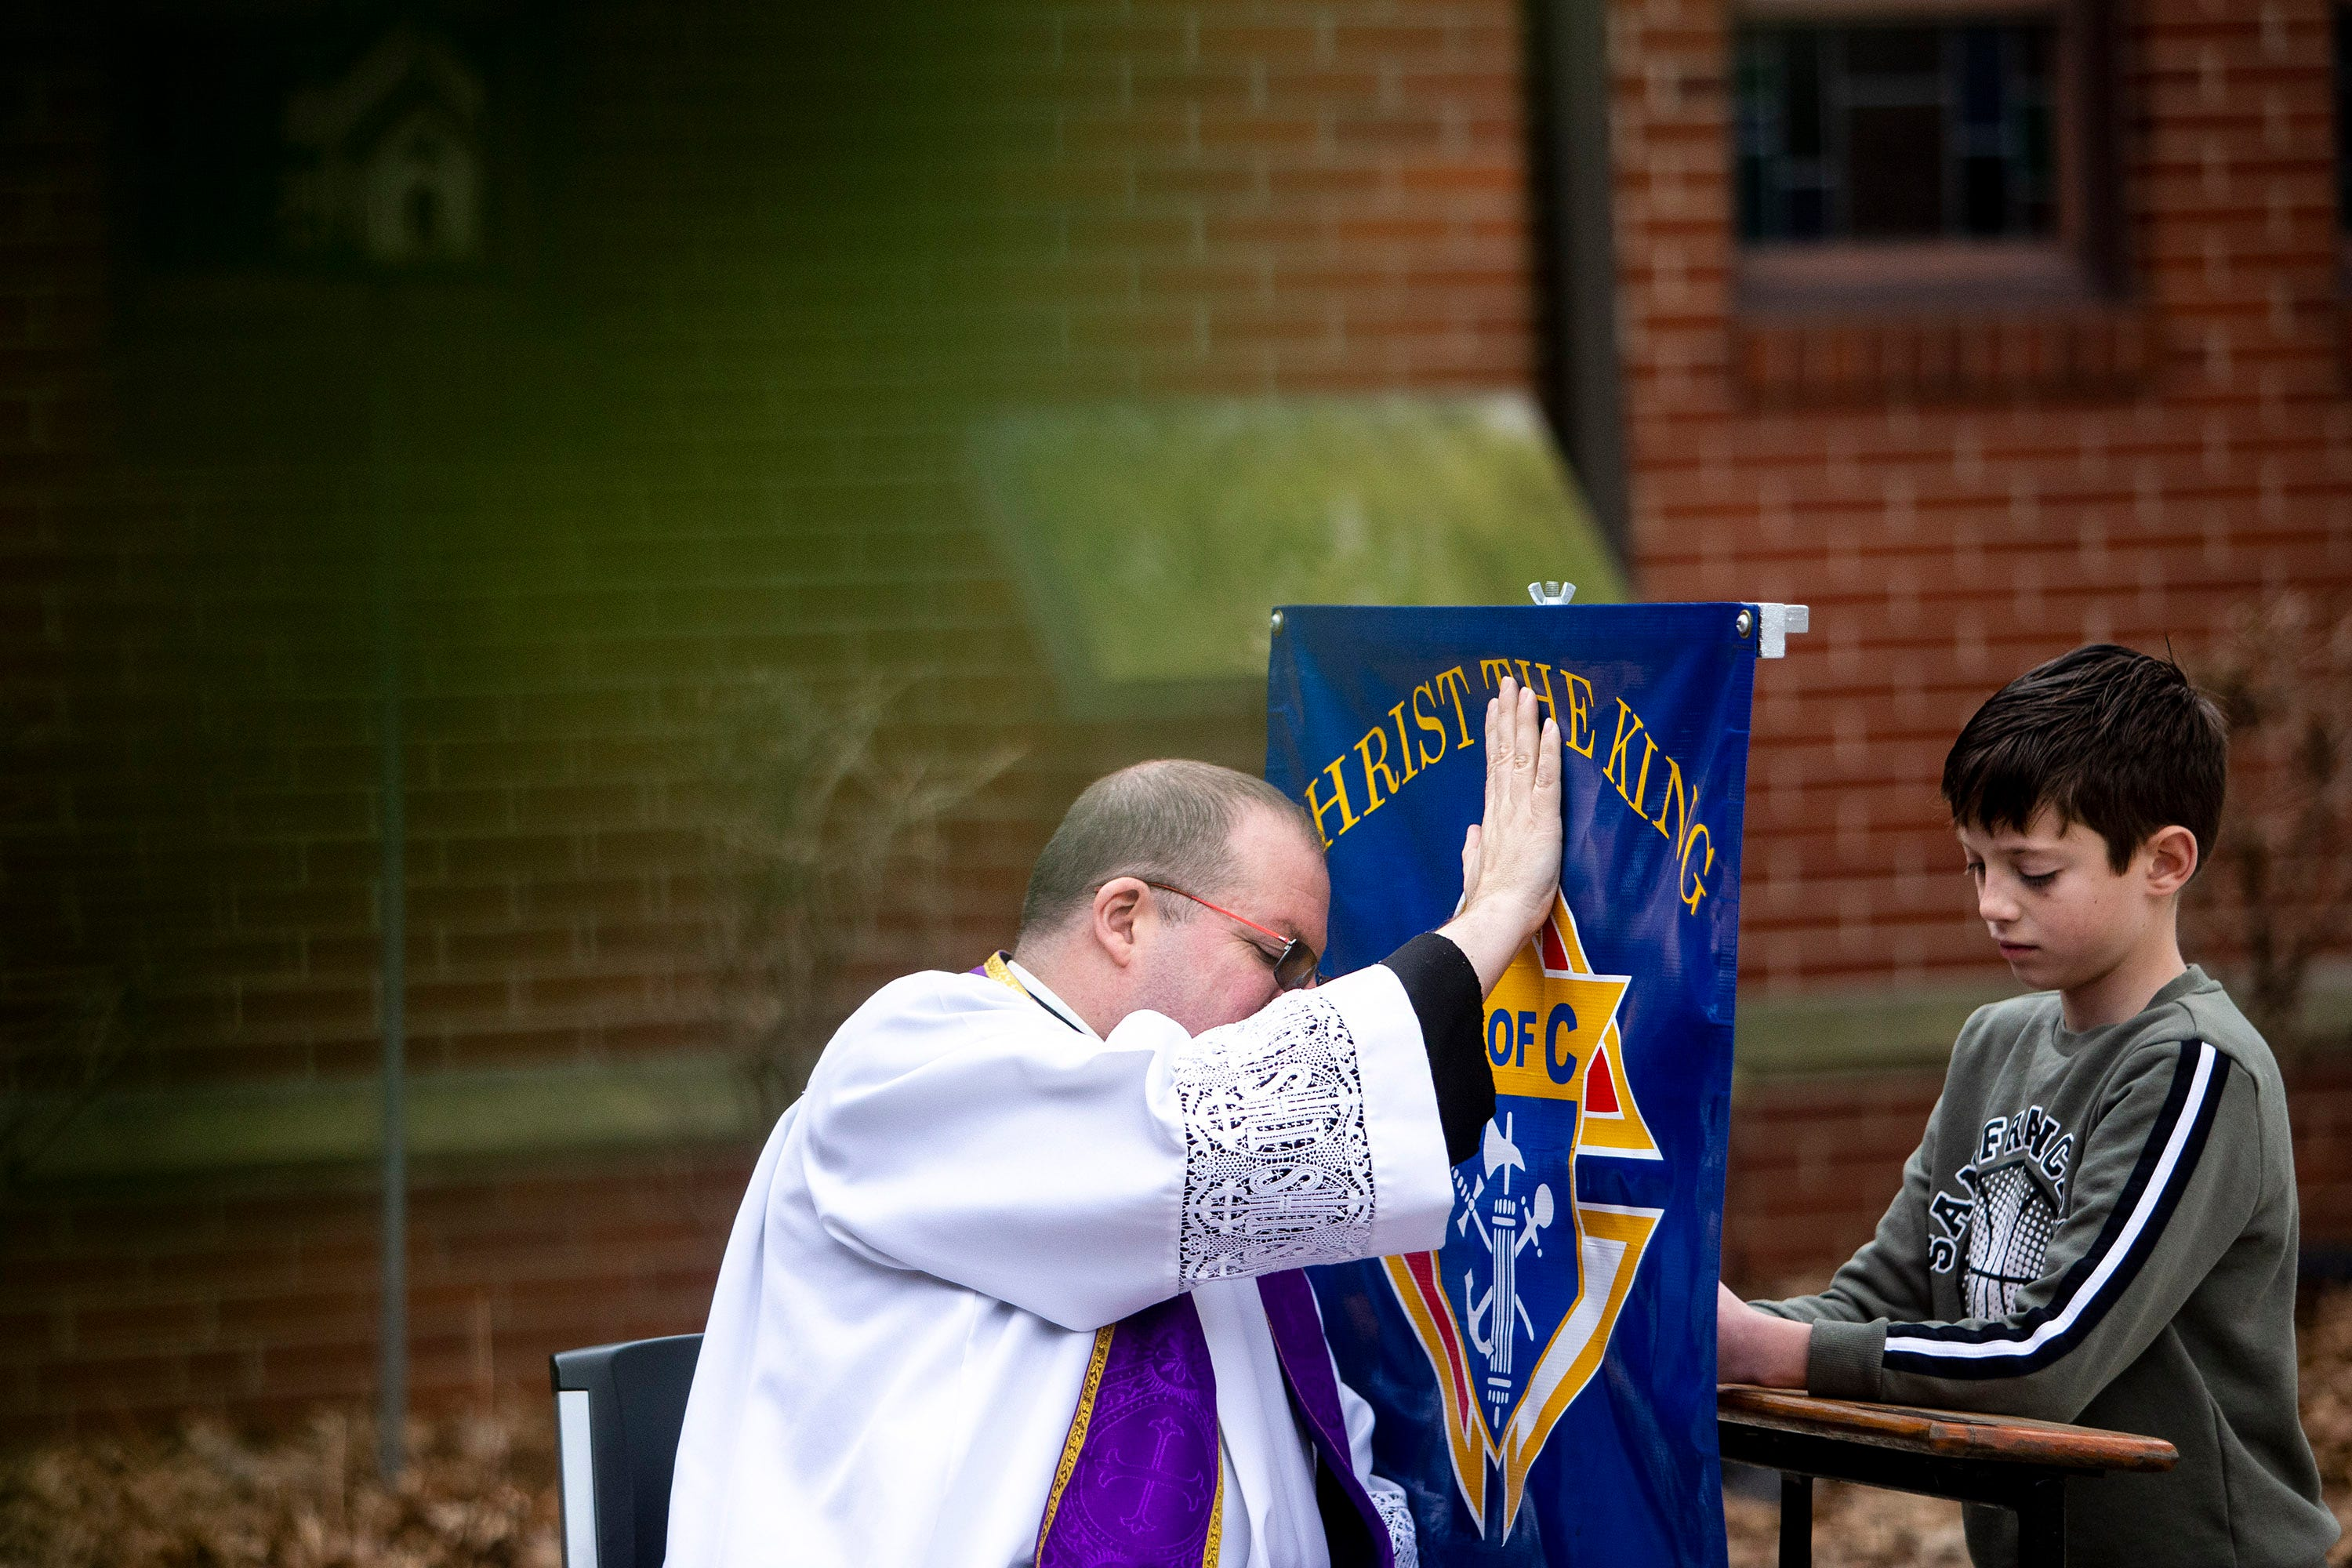 The Rev. P.J. McManus, of Christ the King Church, listens to confession from Eddie, a young parishioner of Christ the King, outside of the church's entrance on Tuesday, March 24, 2020, in Des Moines. McManus moved confession outside after the rise of COVID-19 in Iowa.